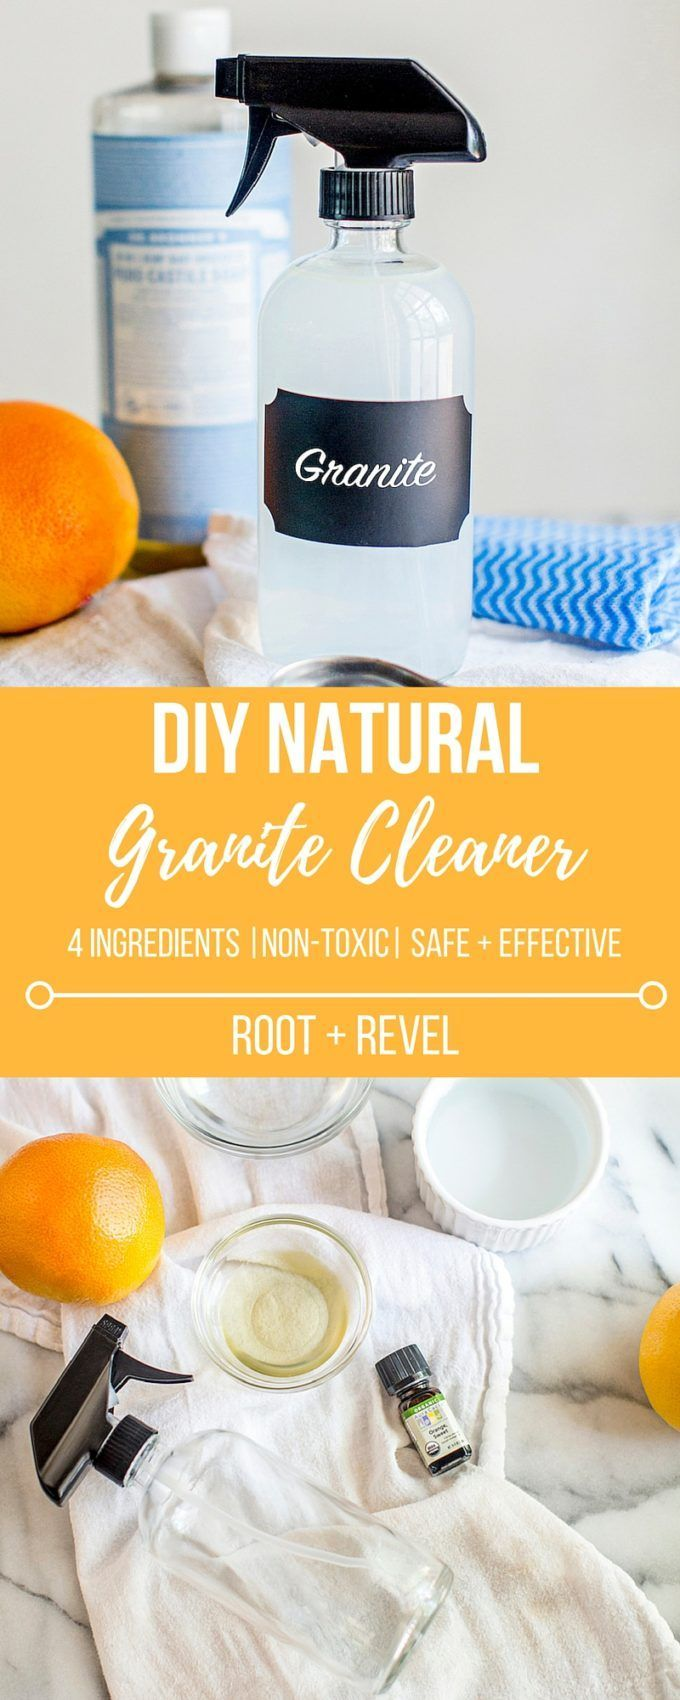 DIY Natural Granite Cleaner with Essential Oils With just 4 ingredients, this DIY Natural Granite Cleaner Spray, made without vinegar, will clean and disinfect your countertops. The homemade recipe is best for organic housekeeping and those looking for safe, non-toxic cleaning options. And it smells amazing thanks to essential oils! Natural Granite Cleaner with Essential Oils With just 4 ingredients, this DIY Natural Granite Cleaner Spray, made without vinegar, will clean and disinfect your countertops. The homemade recipe is best for organic housekeeping and those looking for safe, non-toxic cleaning options. And it smells amazing thanks to essential oils!Wit...